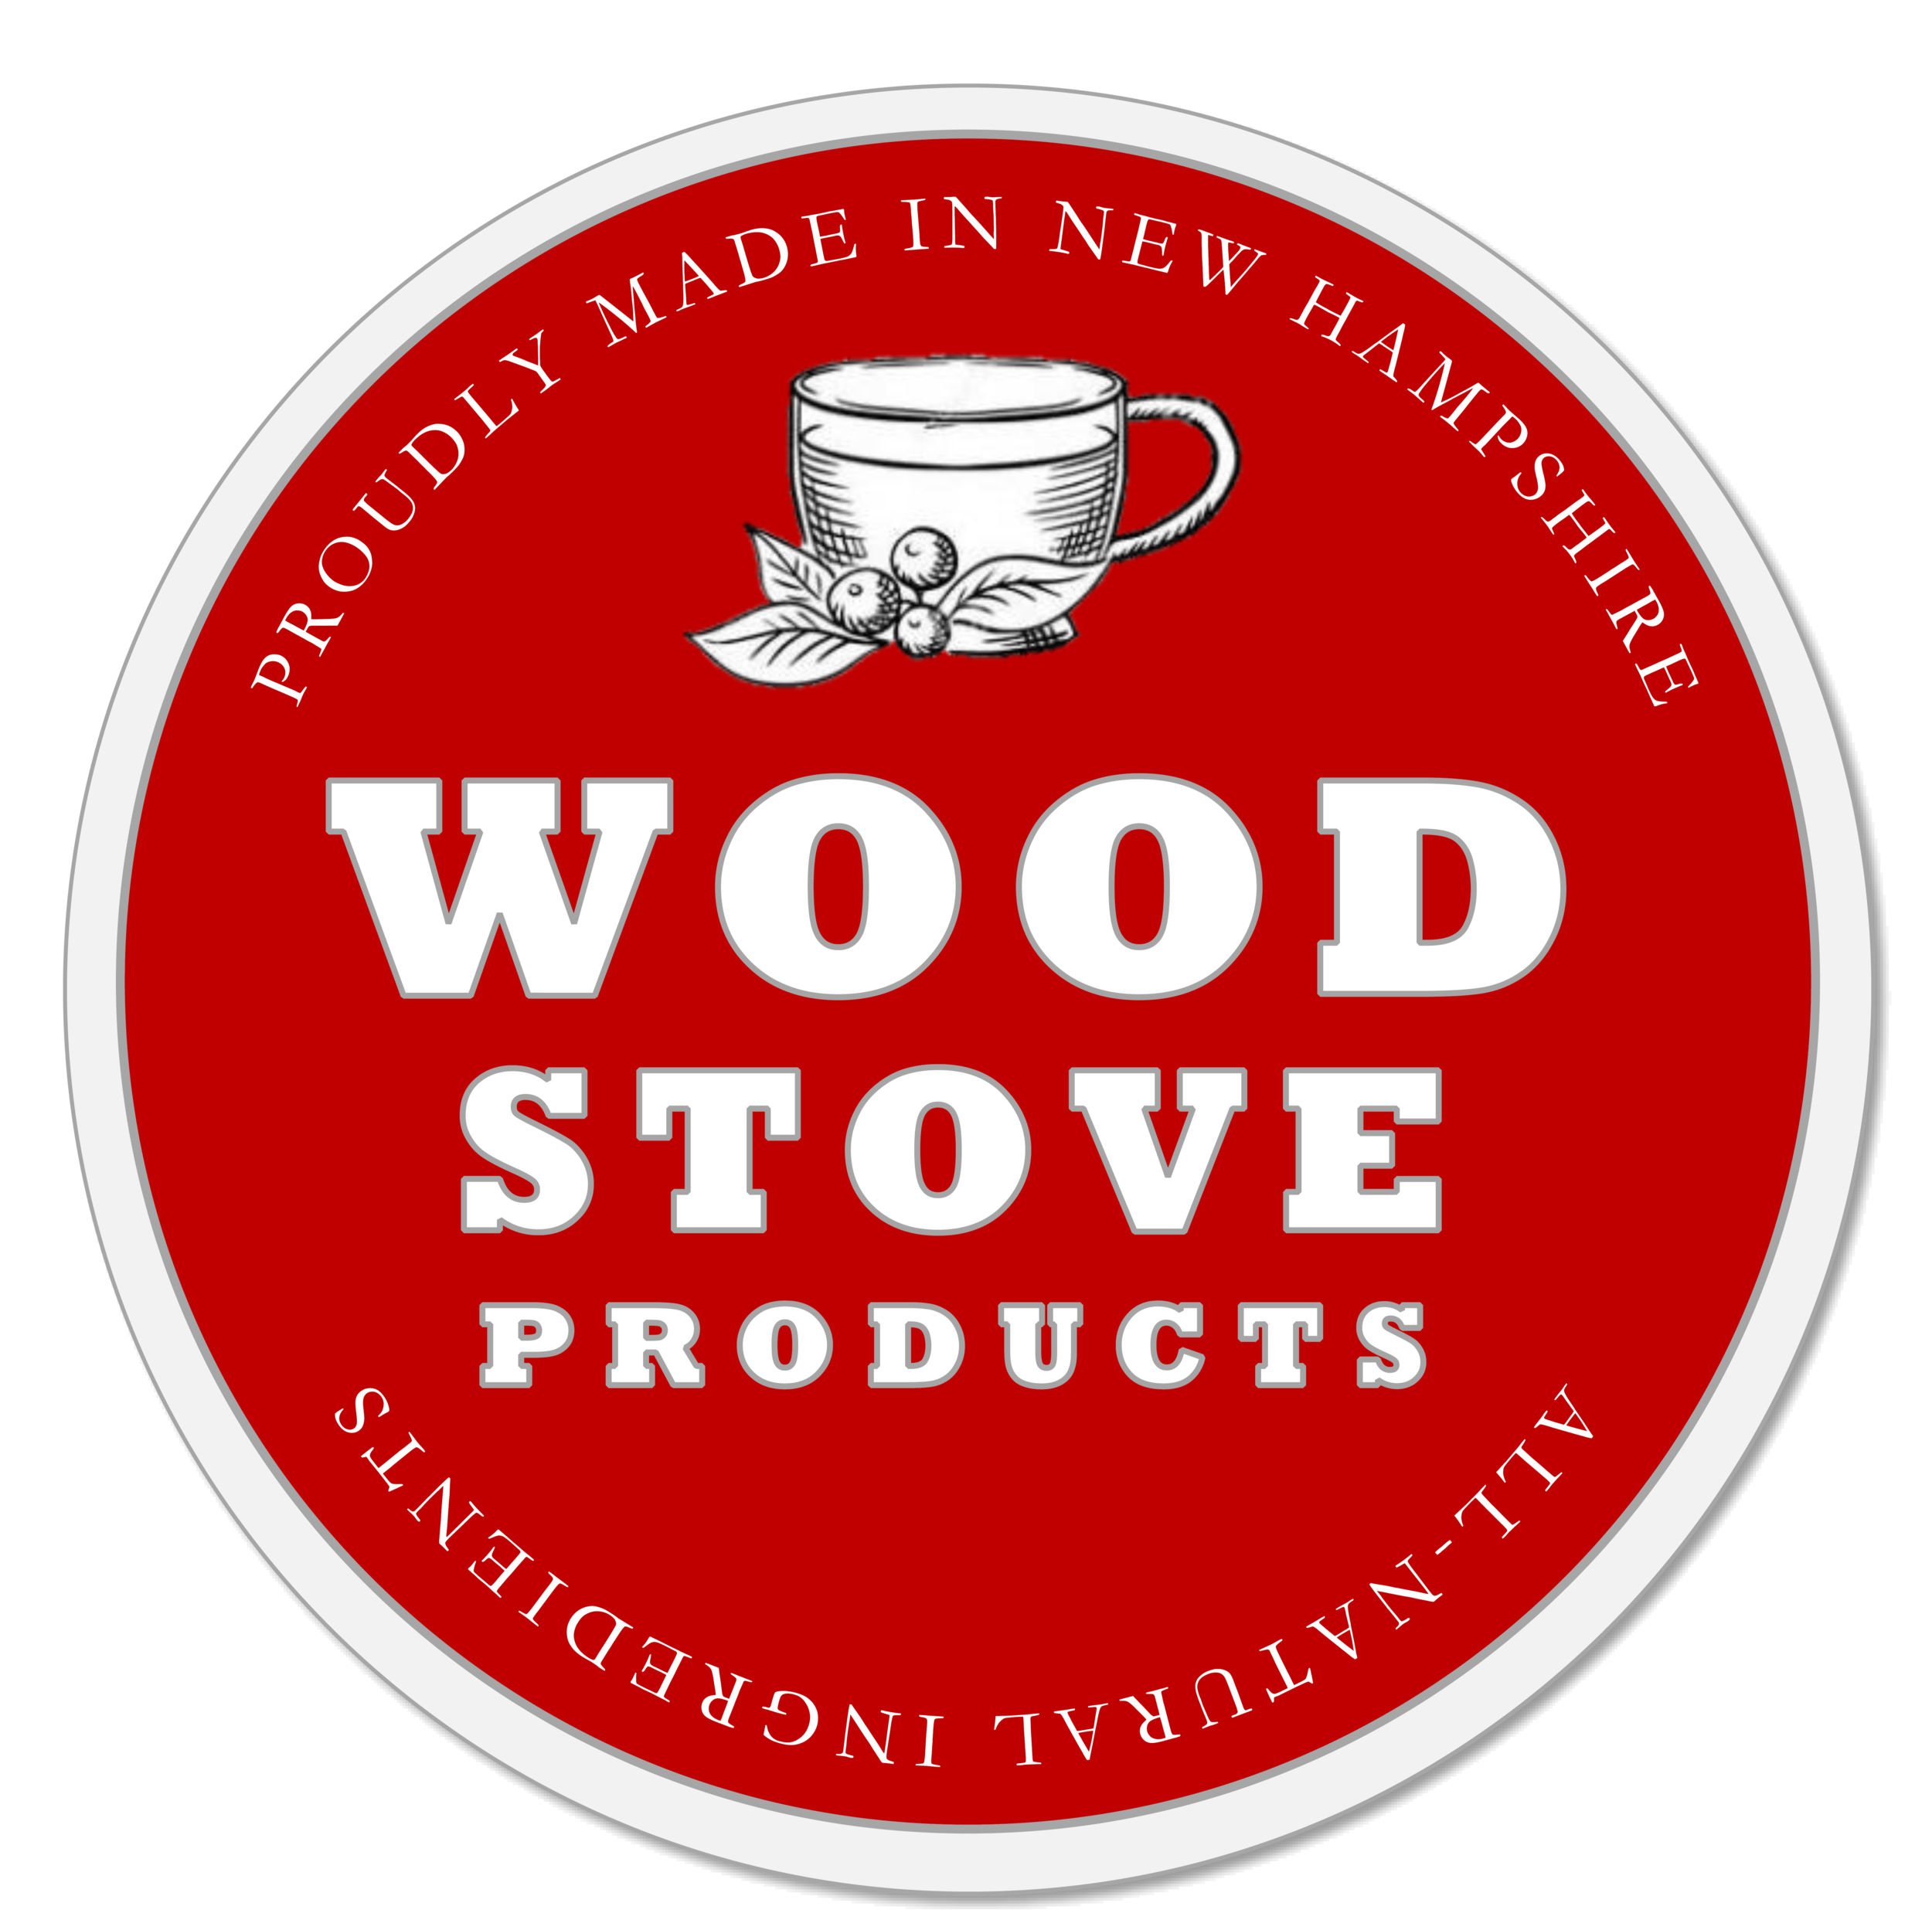 Wood Stove Products.png